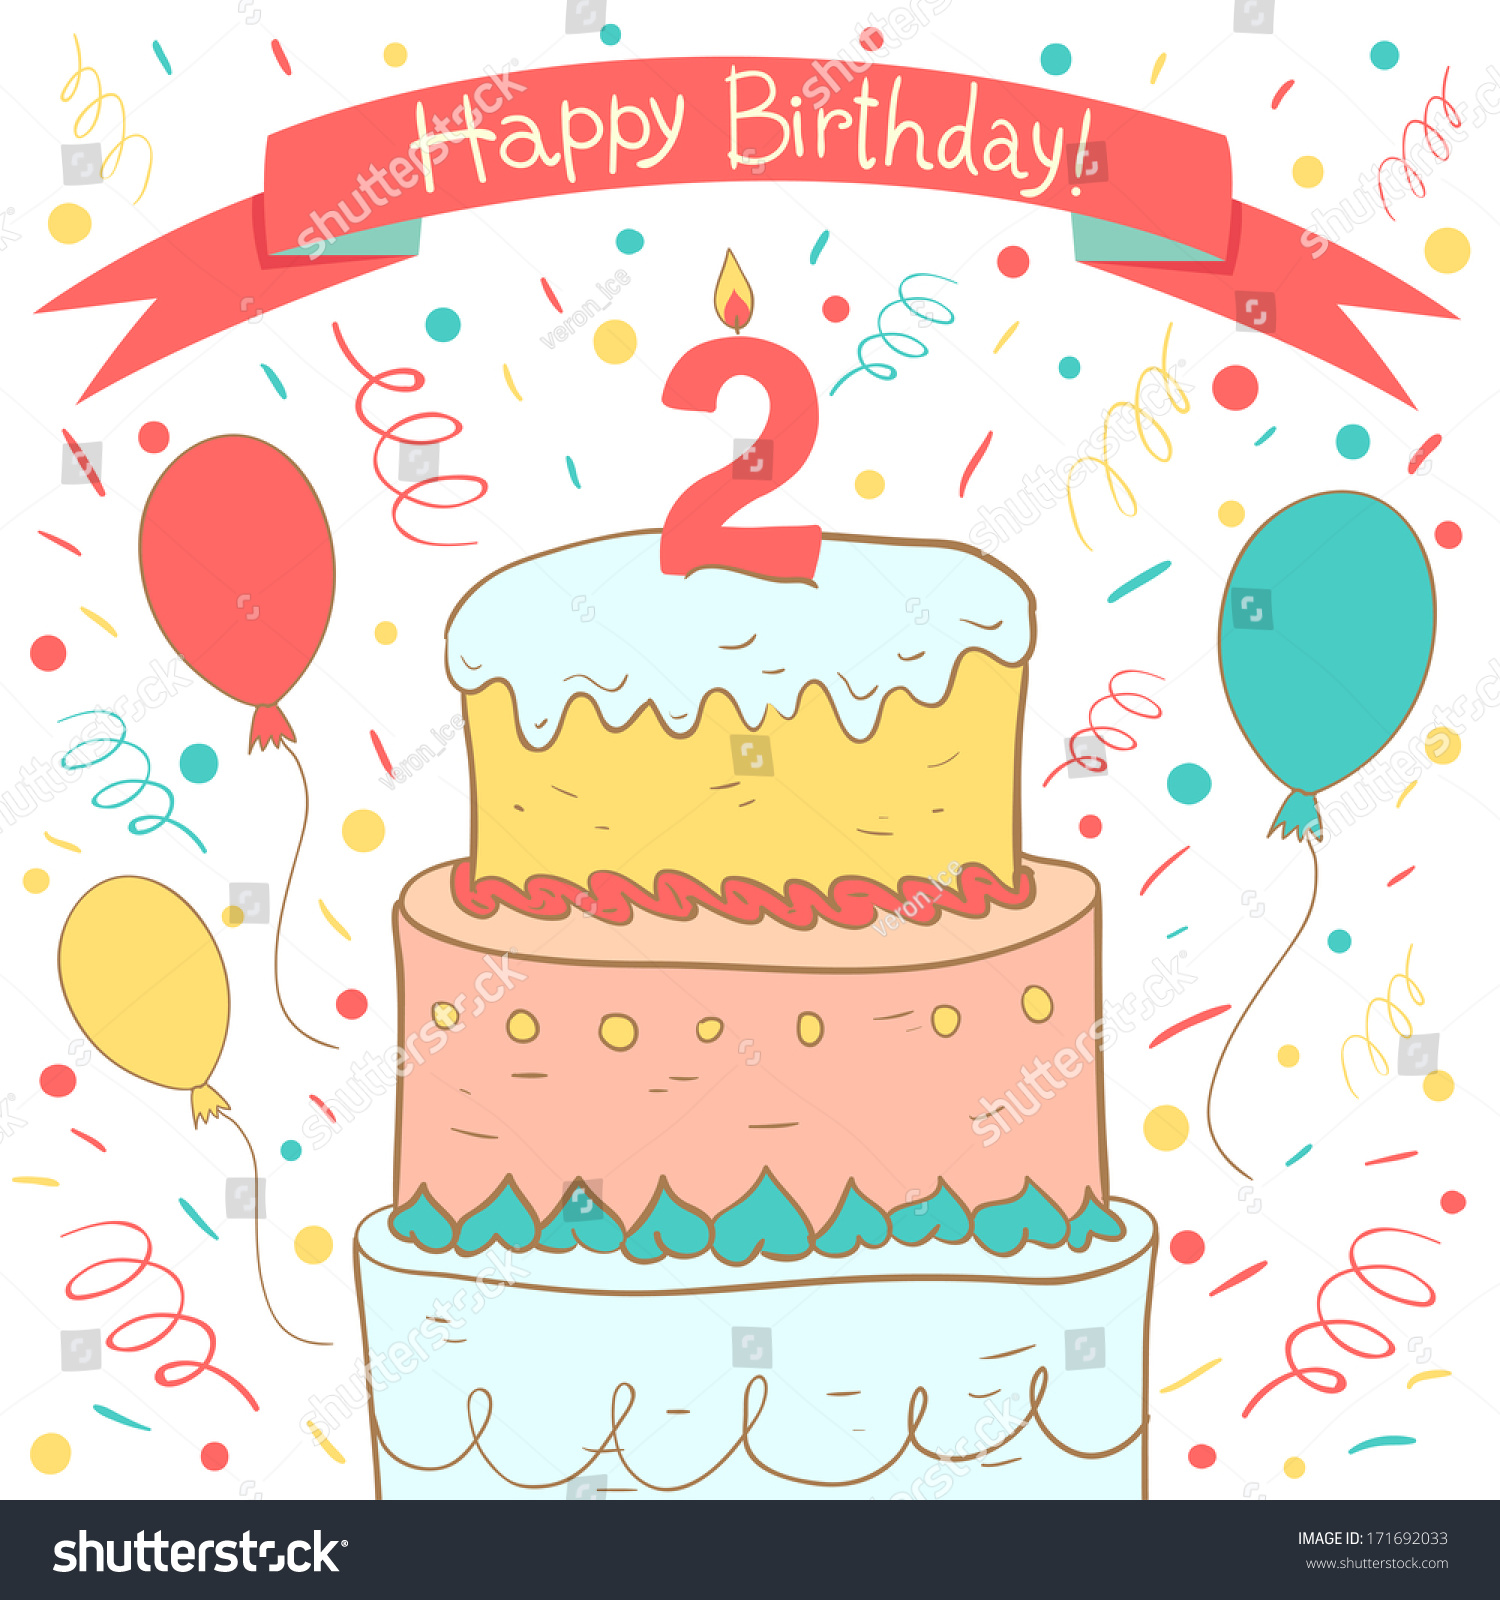 Cute Happy Birthday Card Birthday Cake Vector 171692033 – Second Birthday Cards